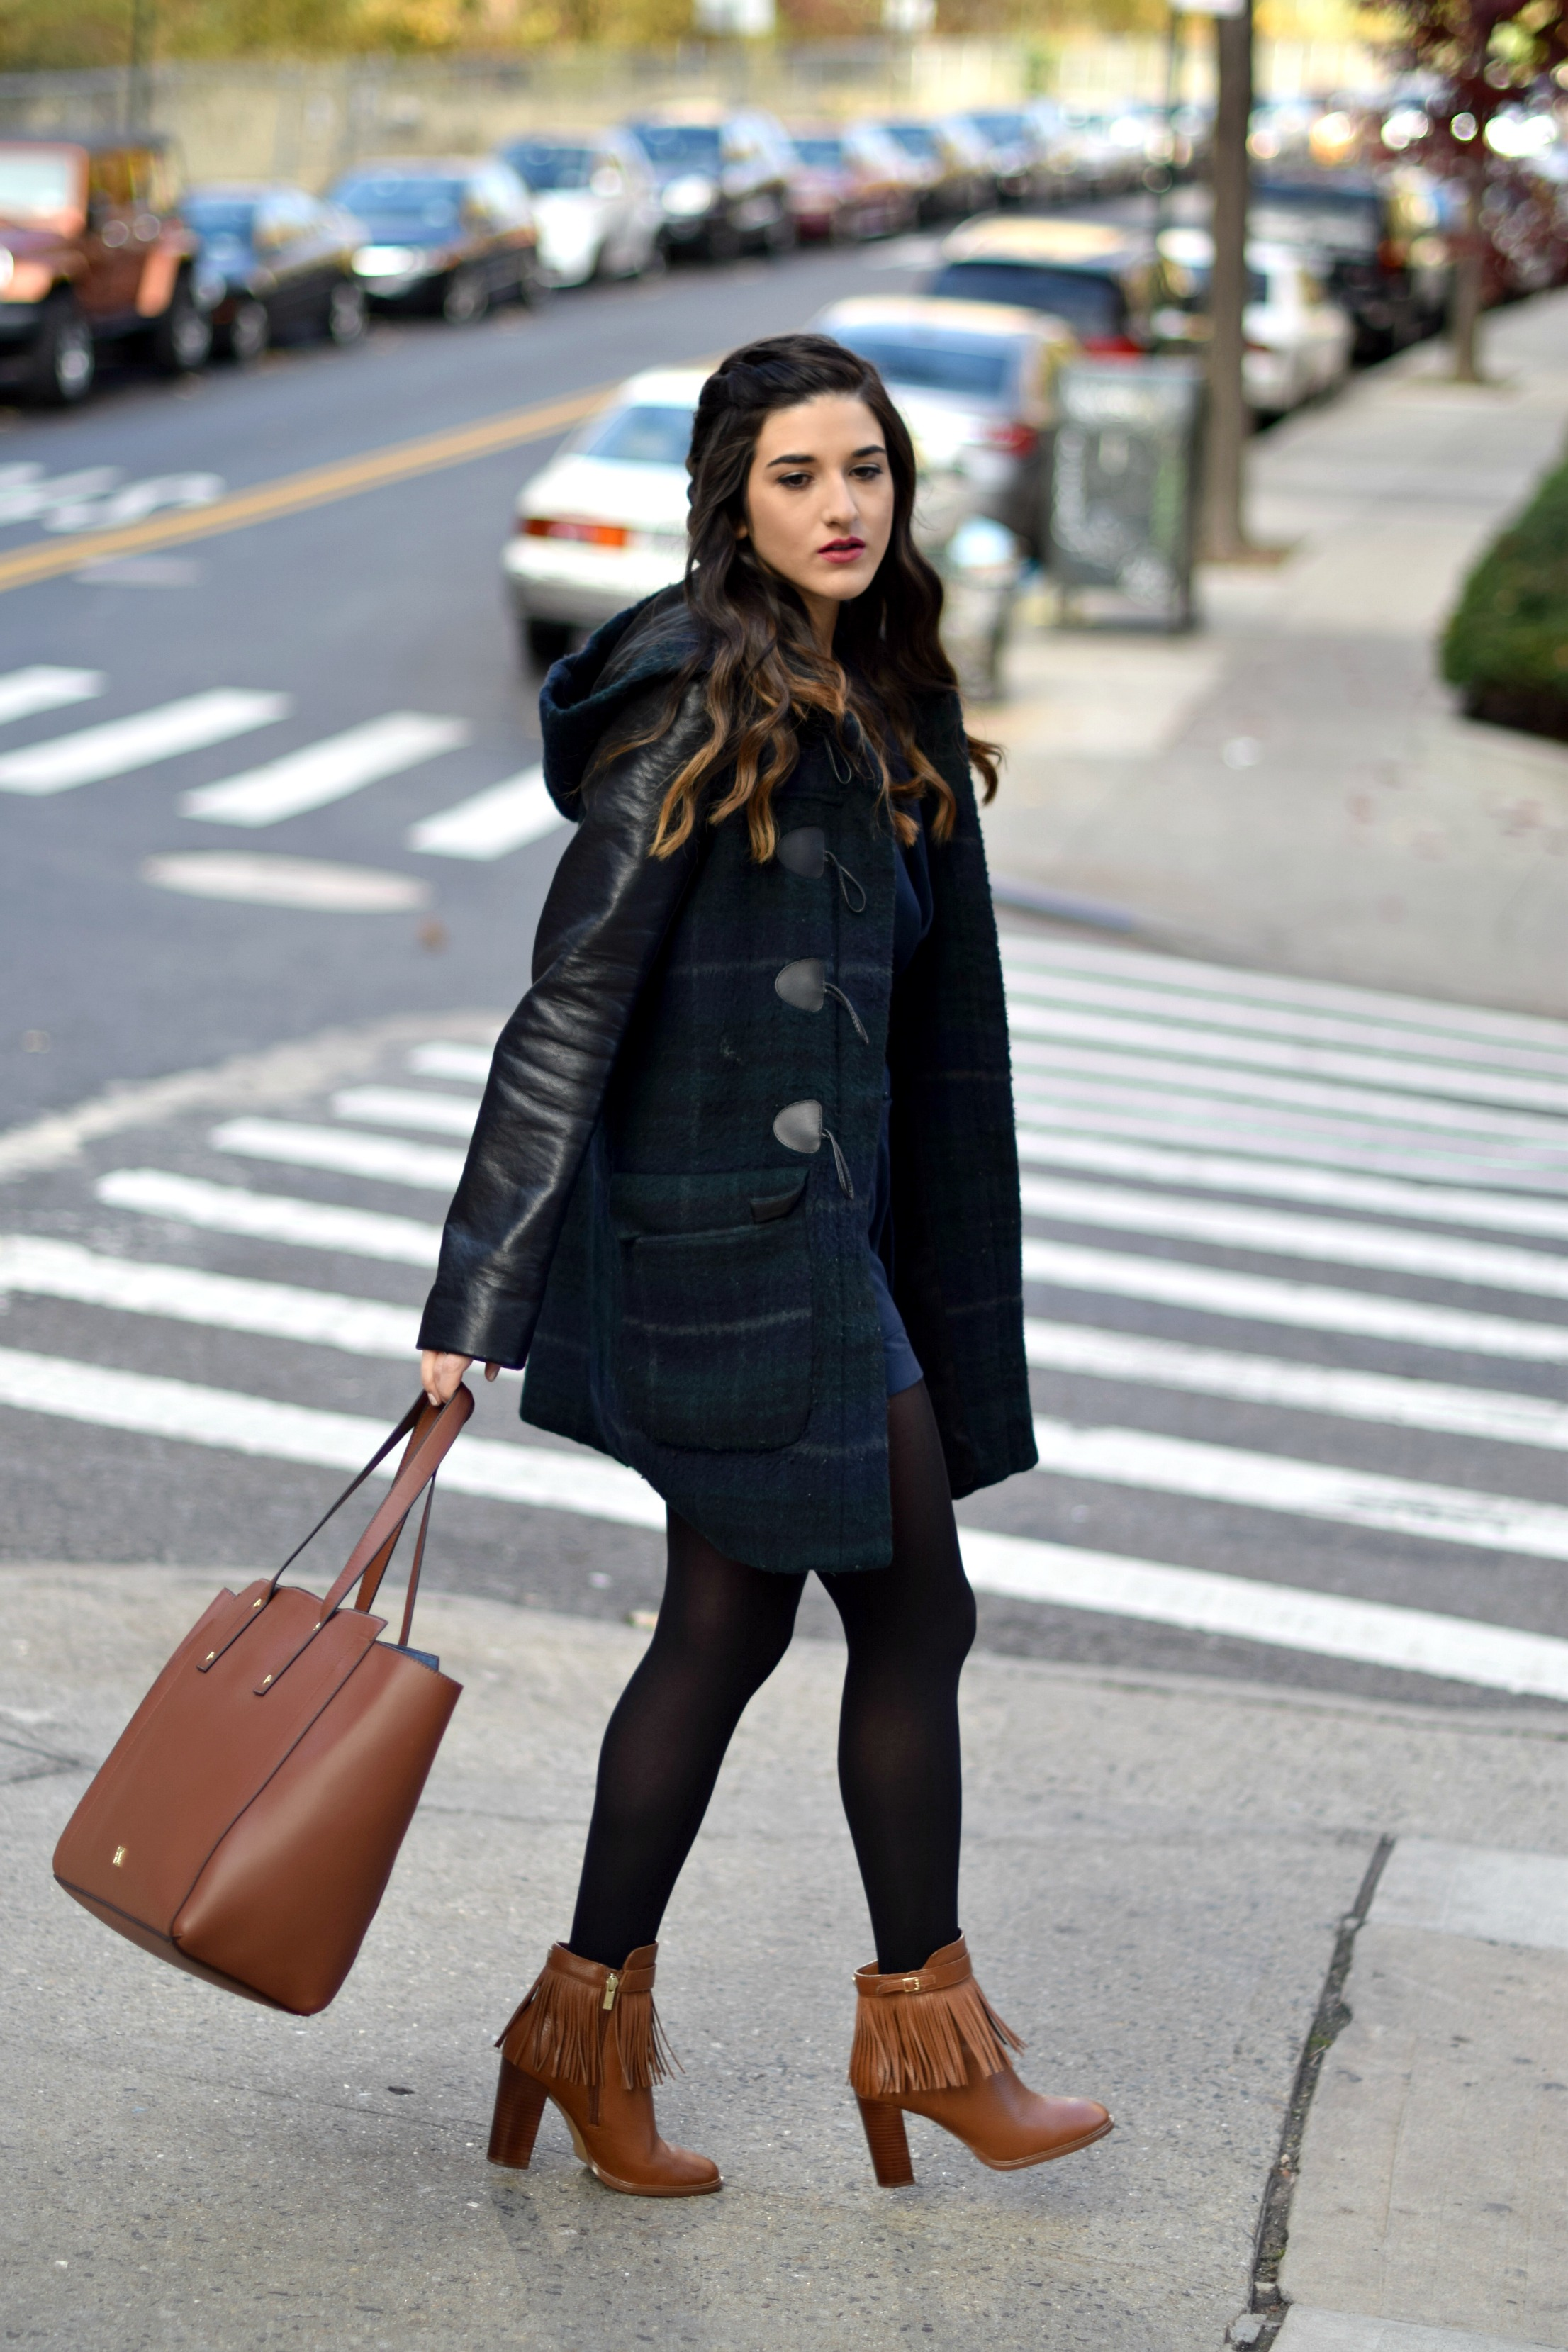 Navy Romper Fringe Booties Louboutins & Love Fashion Blog Esther Santer NYC Street Style Blogger Zara Plaid Coat Leather Sleeves Girl Women OOTD Outfit Soho Tote Ivanka Trump Accessories Shoes Boots Winter Black Tights Hair Braid Inspo Jewelry Rings.jpg